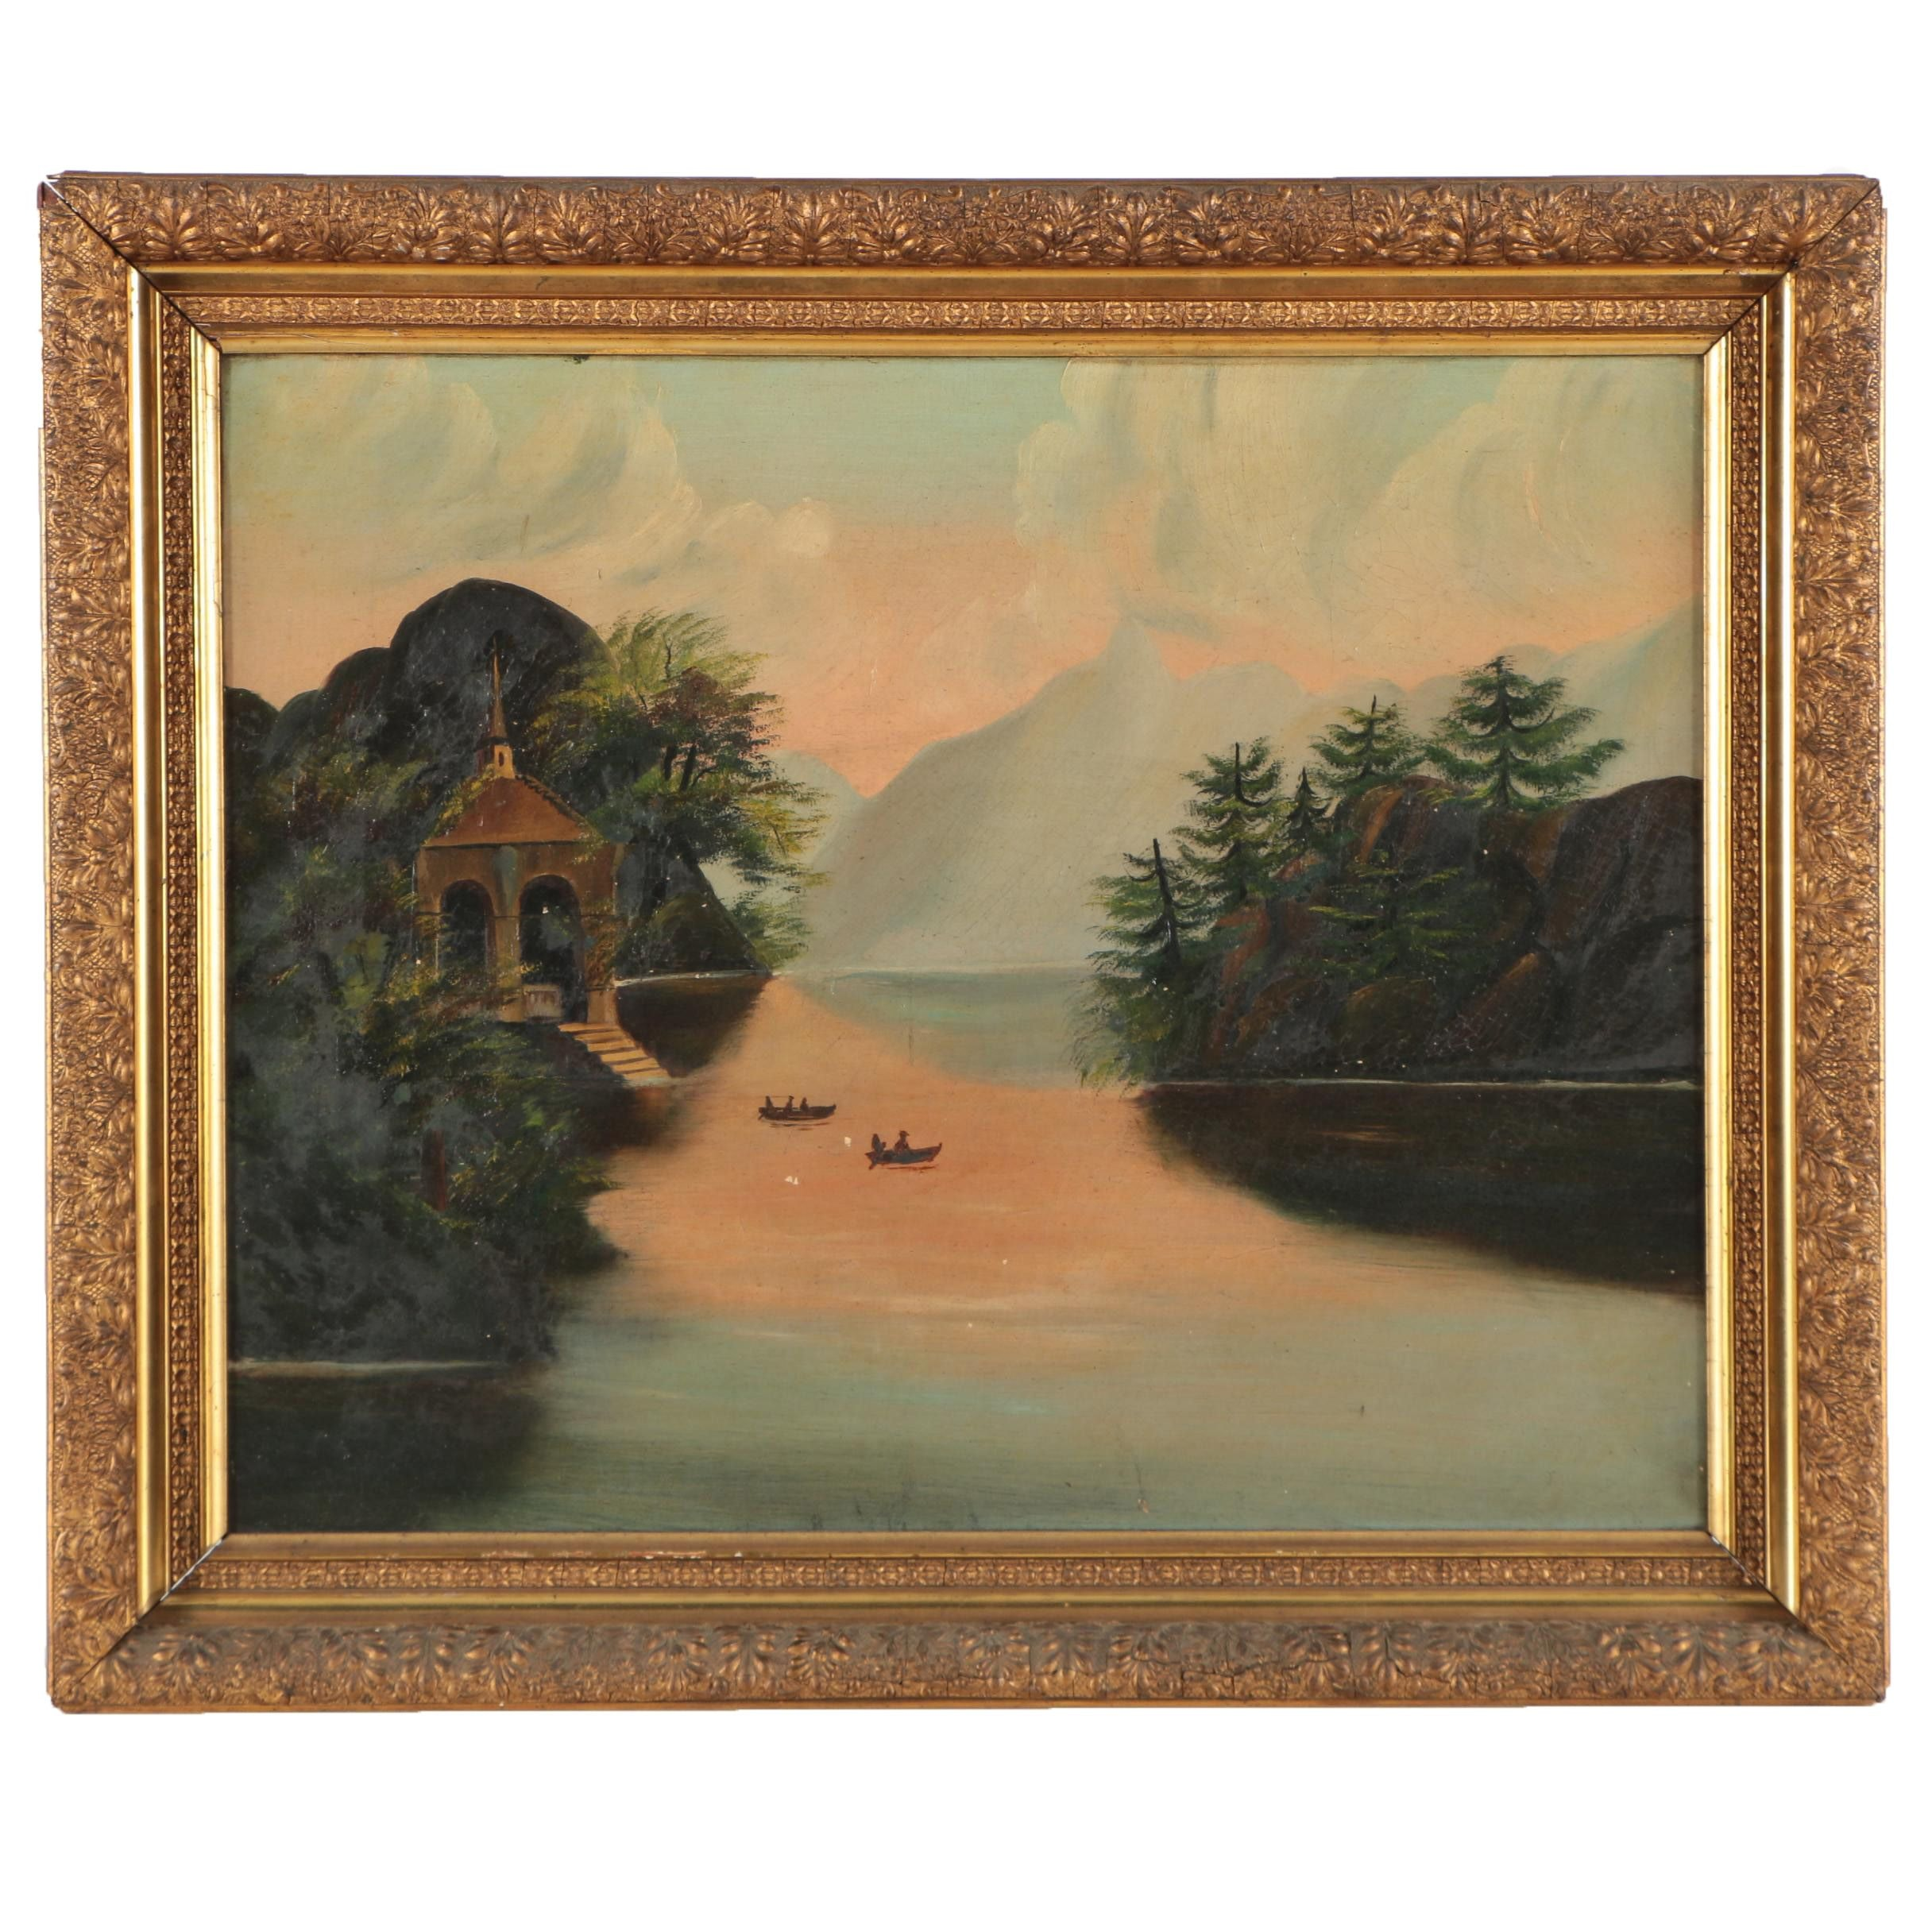 Antique Naïve Oil Painting of Sailboats in a Lake